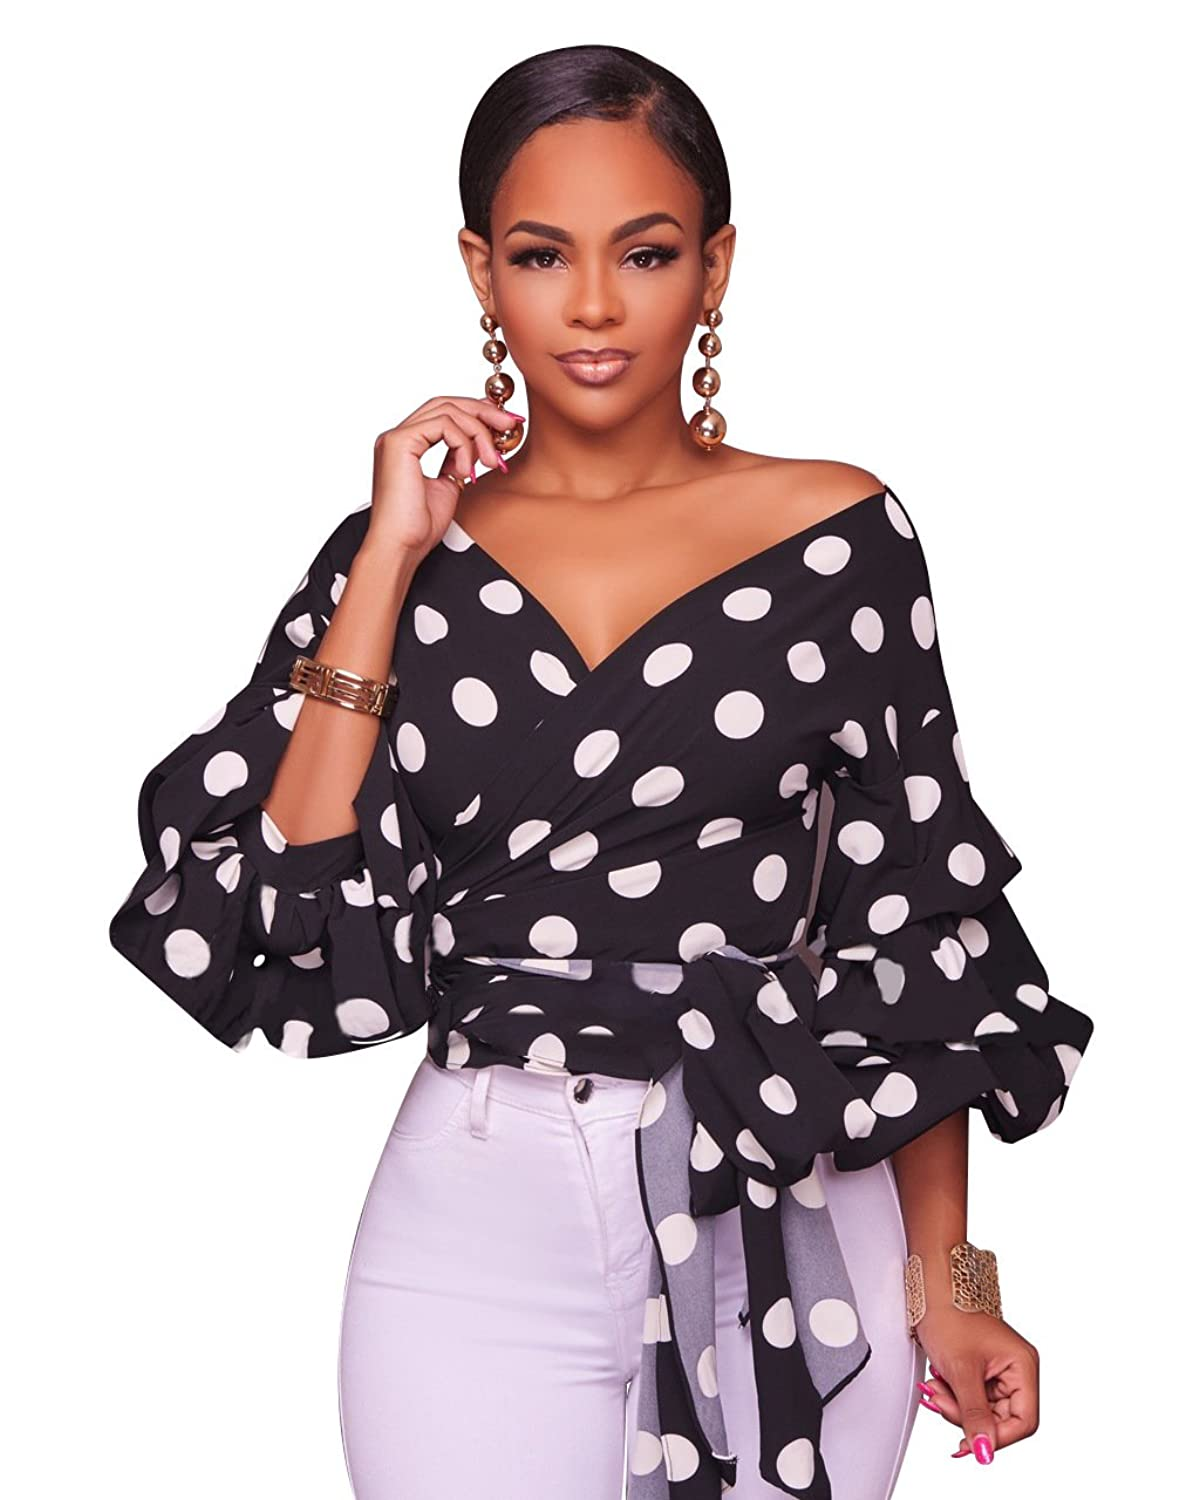 60f10239822 A knit wrap blouse top featuring an allover polka dots design, a surplice  neckline, 3/4 sleeves, self-tie front detail, a chic blouson silhouette, ...